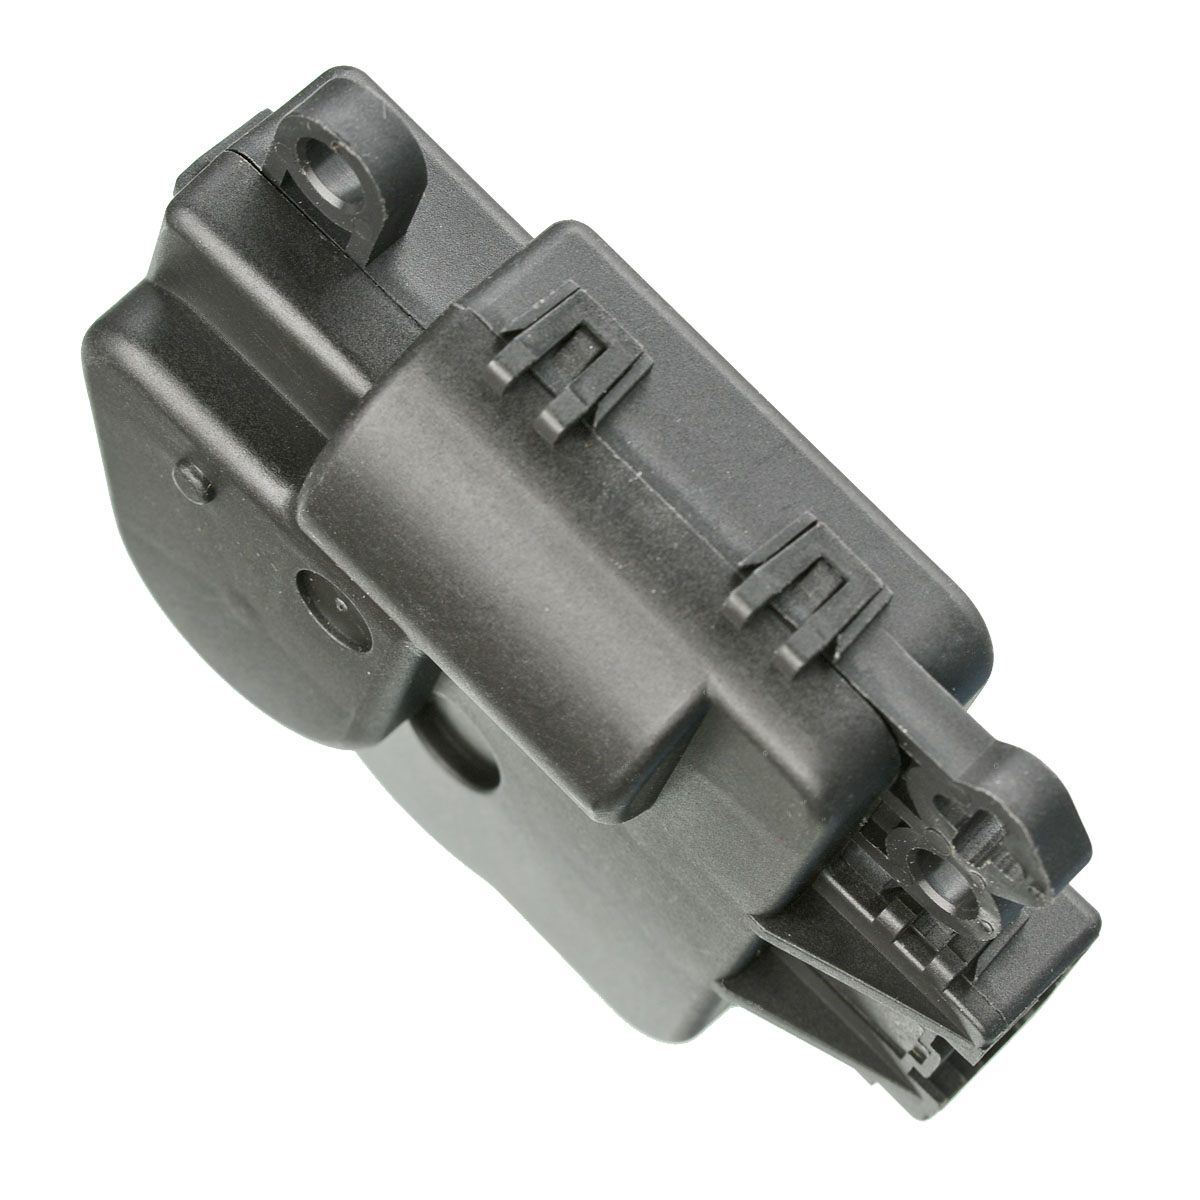 Hvac A C Heater Blend Air Door Actuator For Dodge 1500 2500 3500 Ram 2009 2010 2011 2012 In Parts From Automobiles Motorcycles On